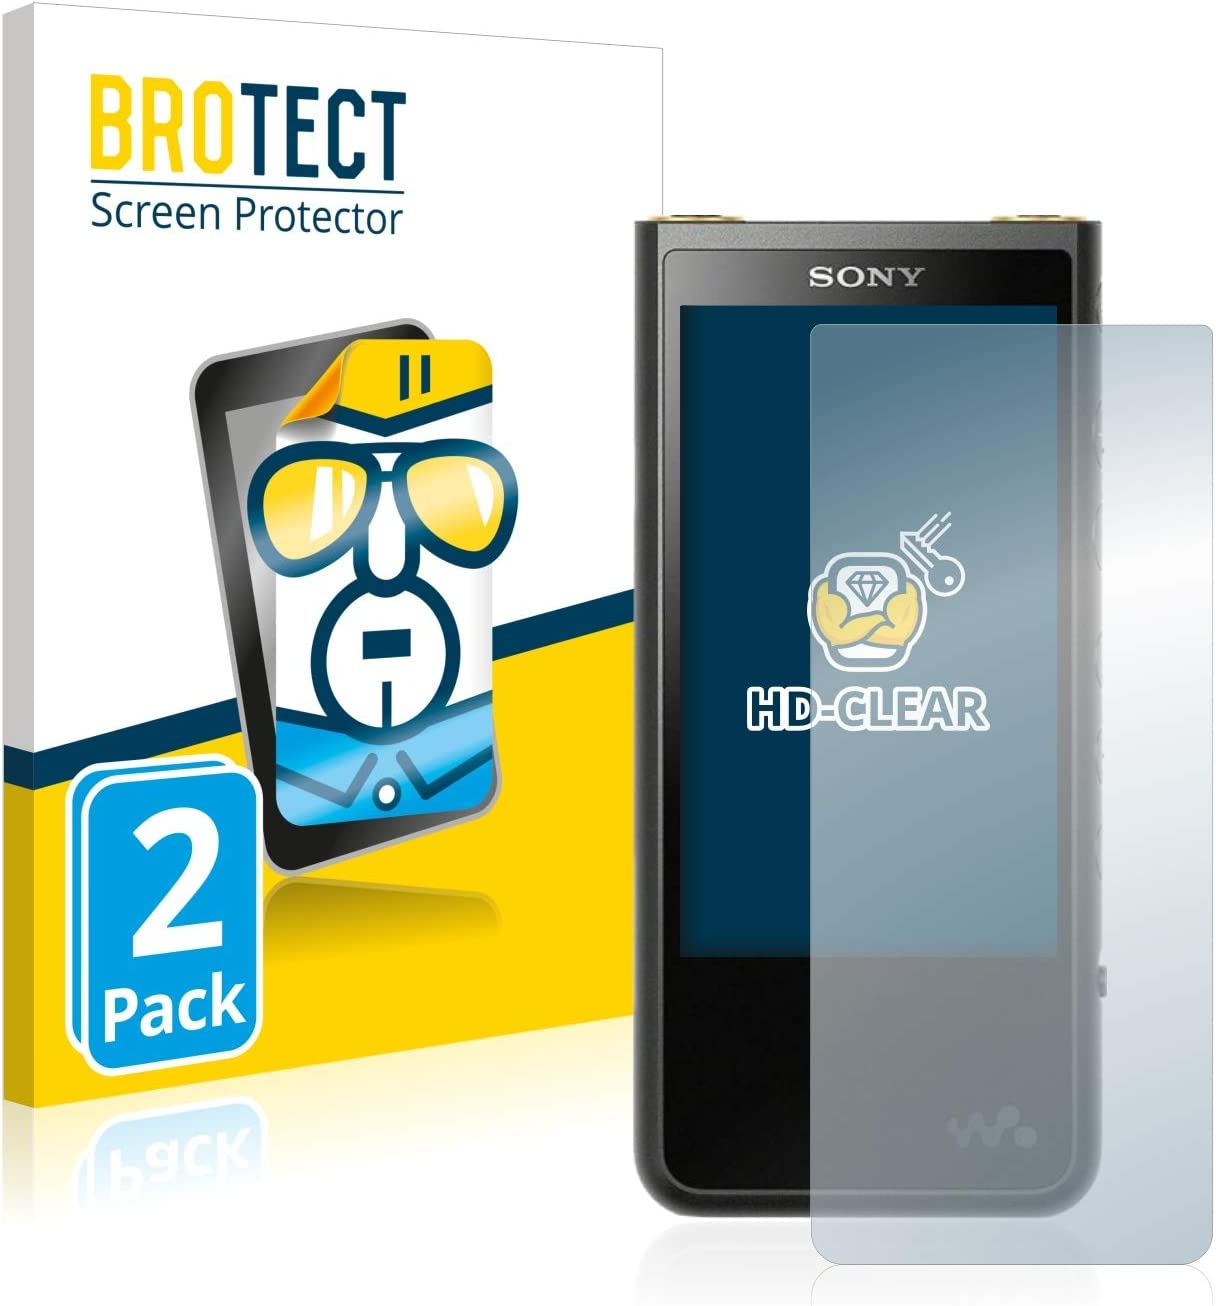 HD-Clear Protection Film brotect 2-Pack Screen Protector compatible with Sony ZX500